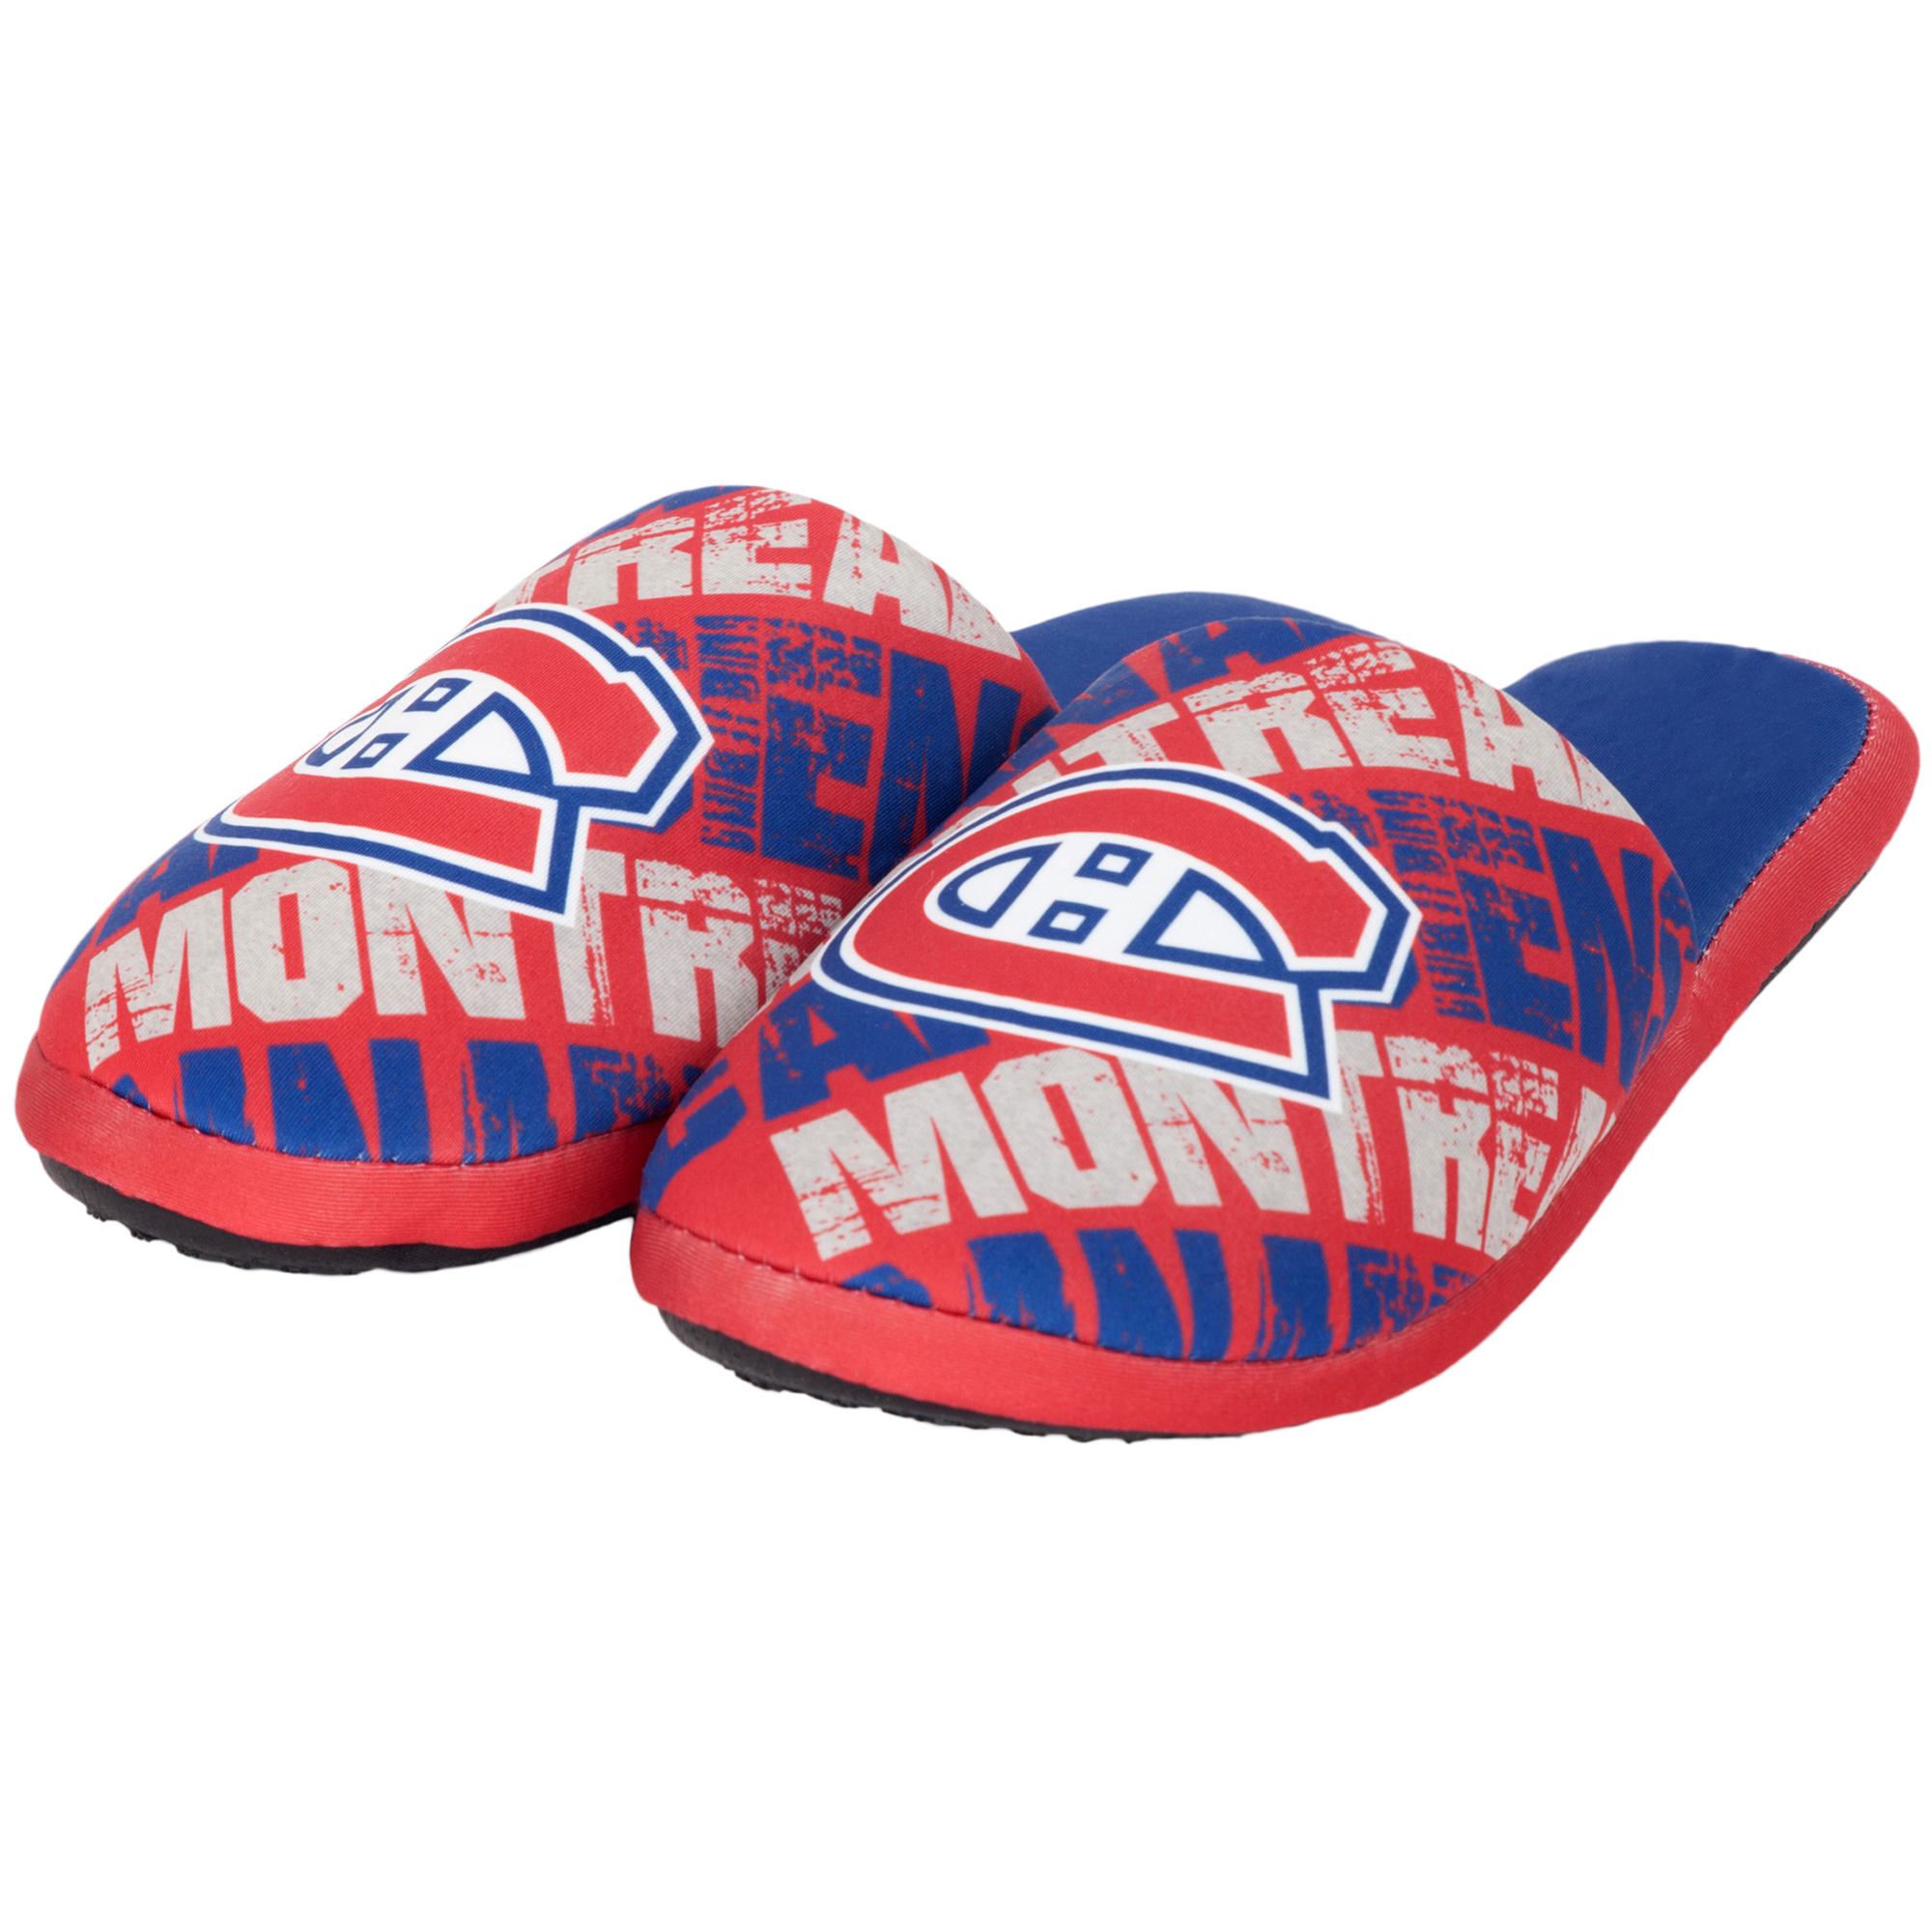 Montreal Canadiens Youth Wordmark Printed Slippers - Red